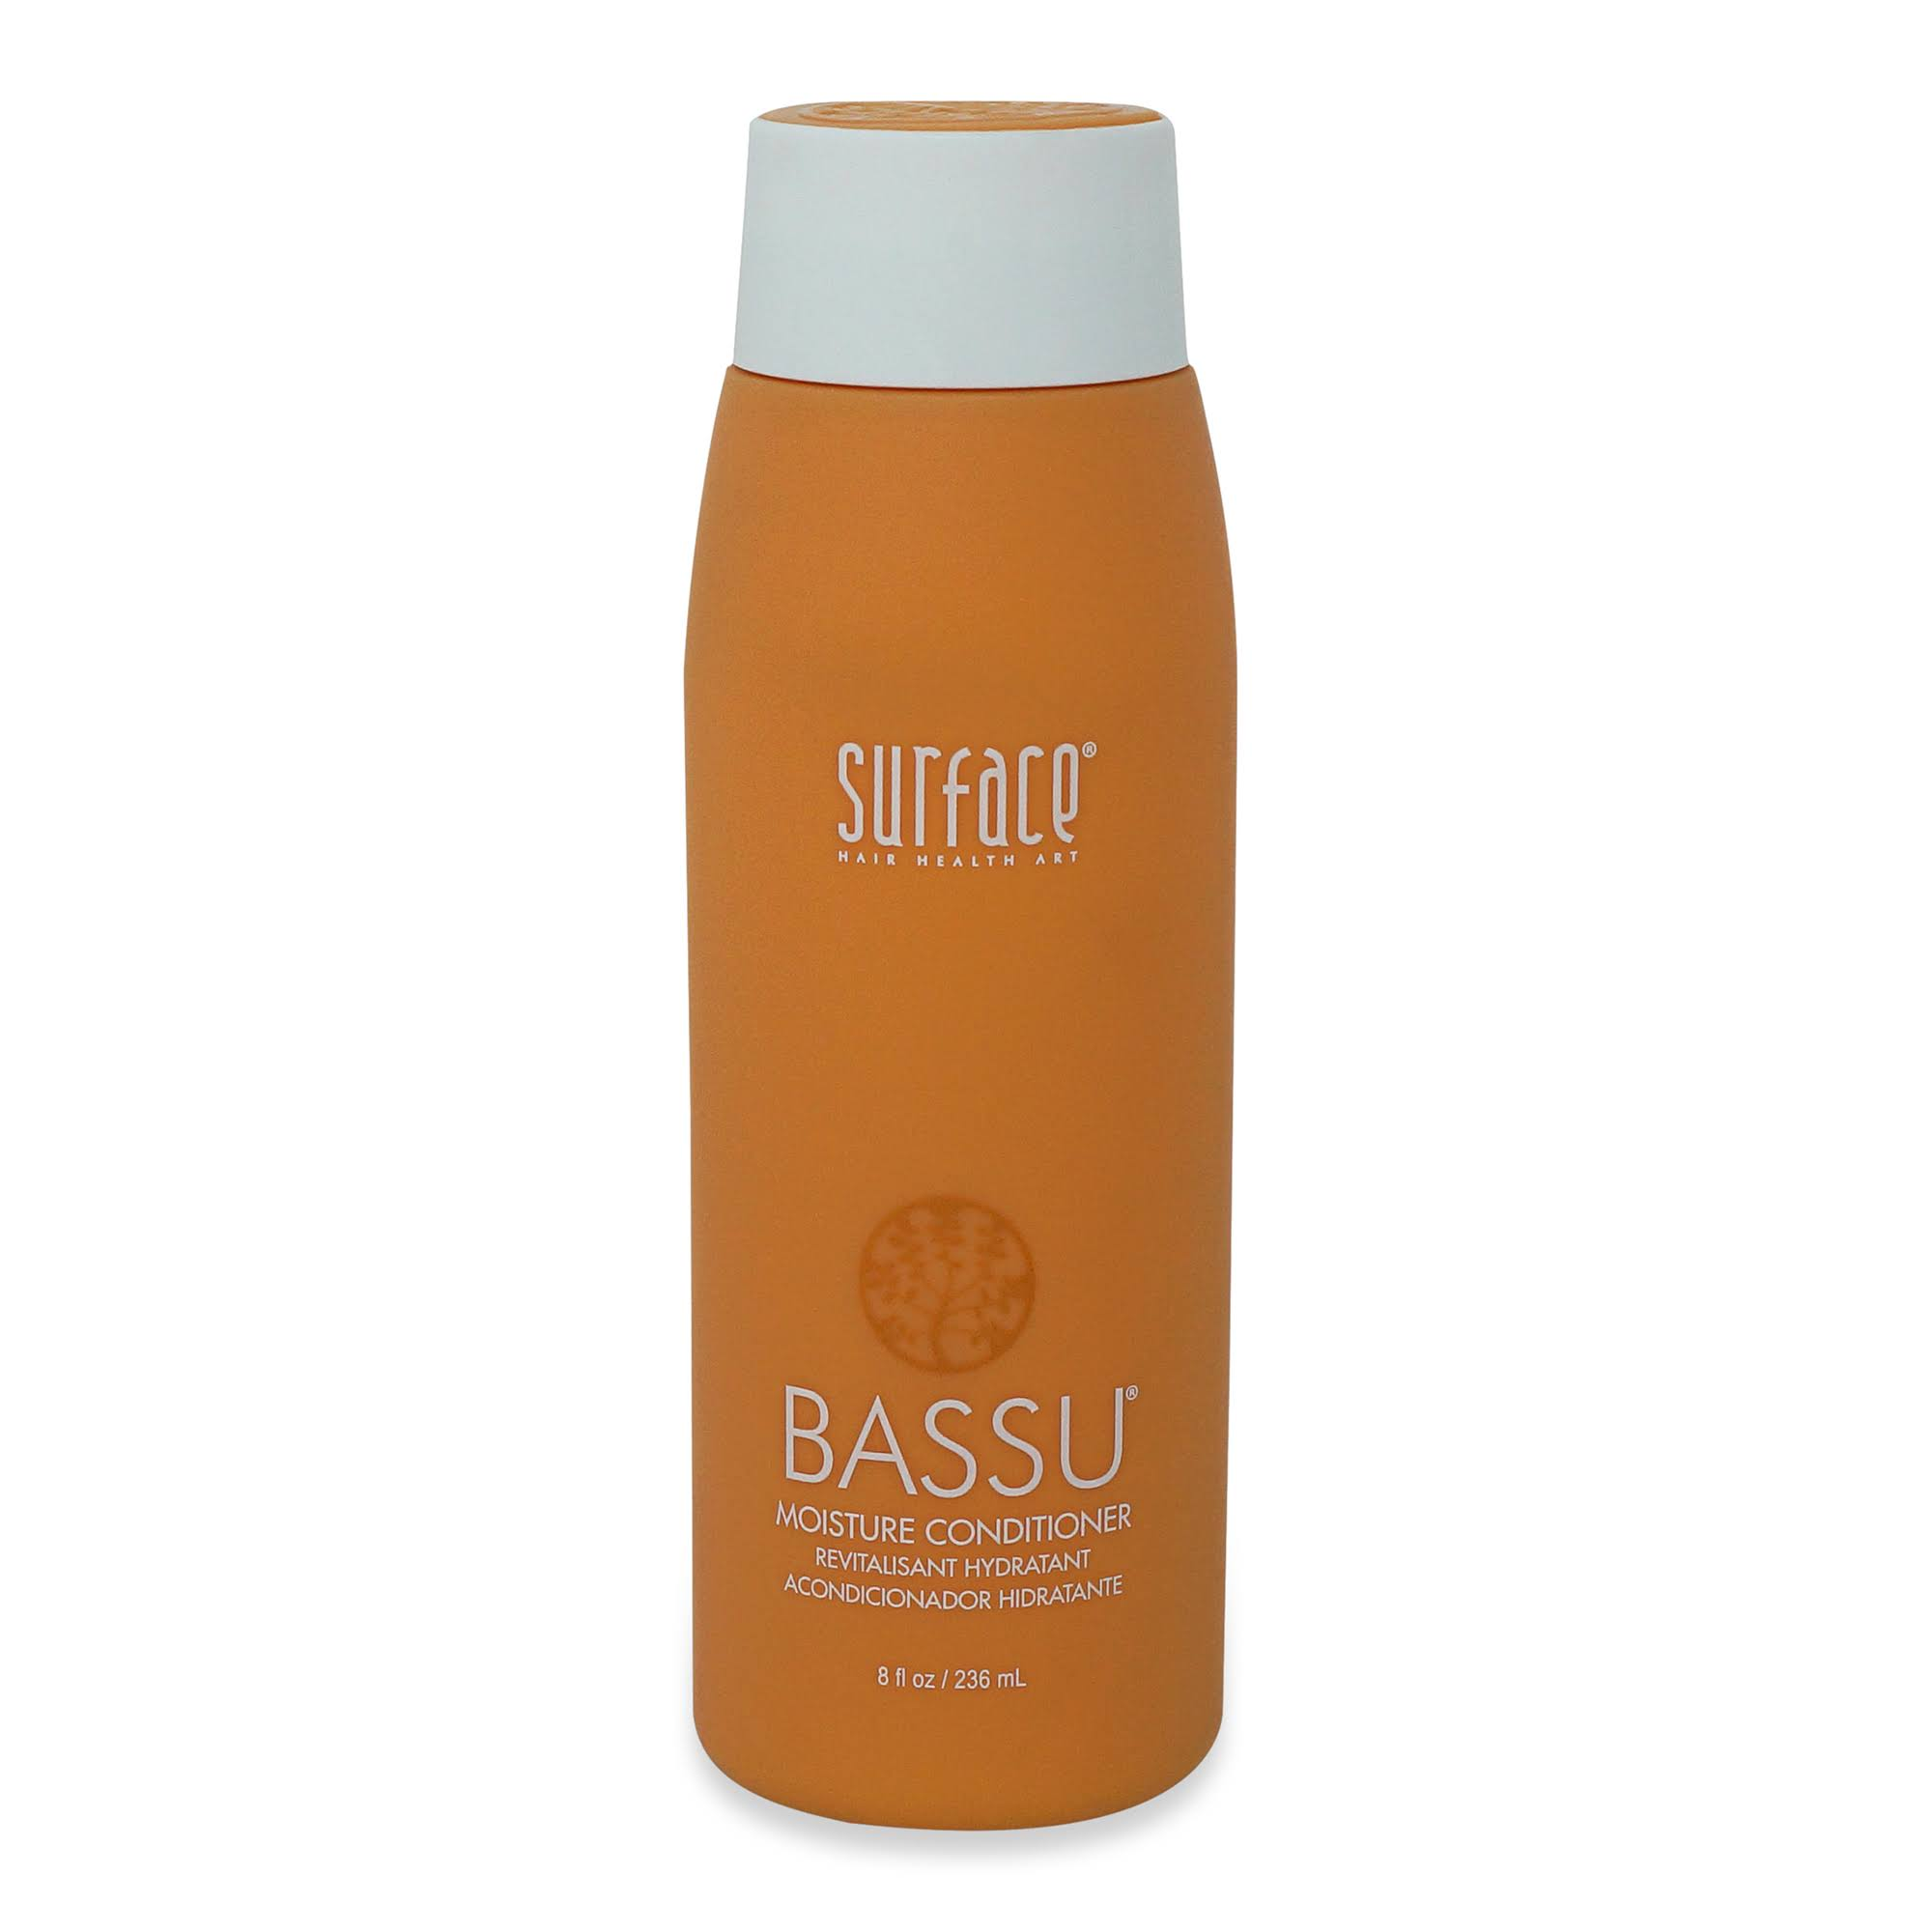 Surface Bassu Moisture Conditioner 8 oz